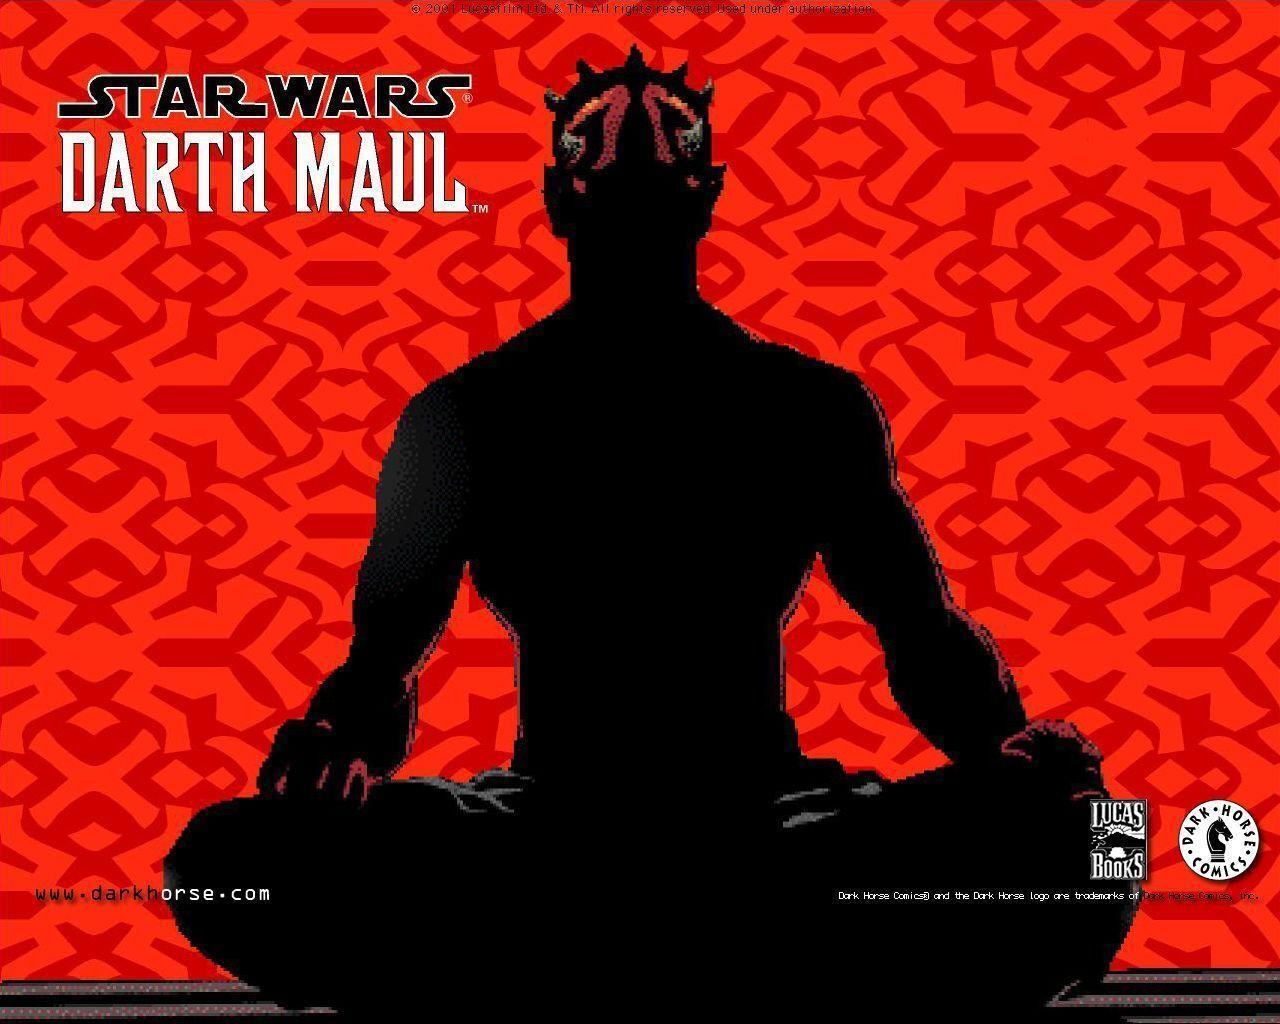 Star Wars: Darth Maul 1 :: Desktops :: Dark Horse Comics